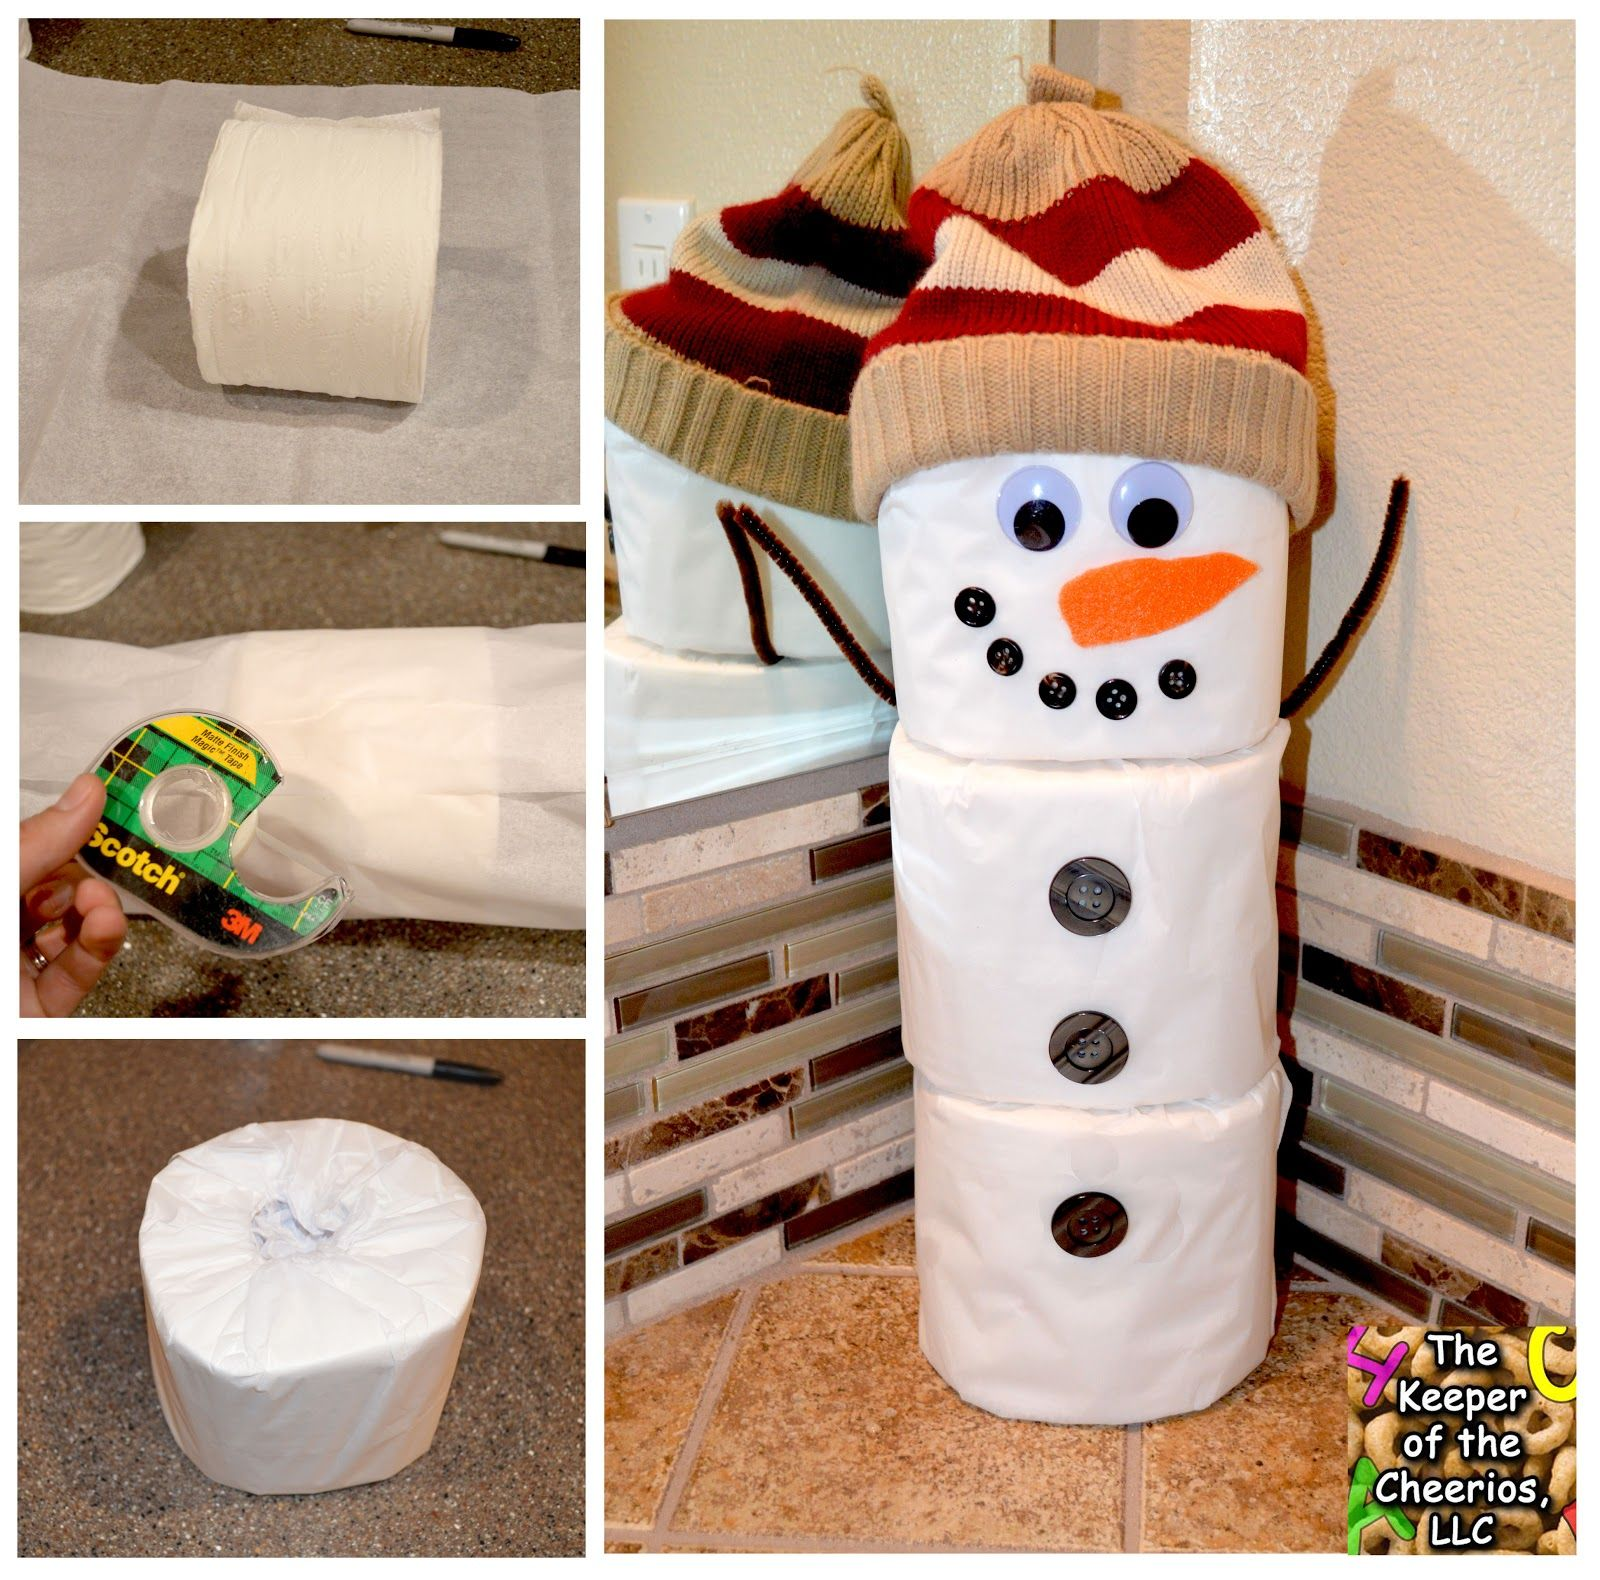 The Keeper of the Cheerios Toilet Paper Snowman Craft